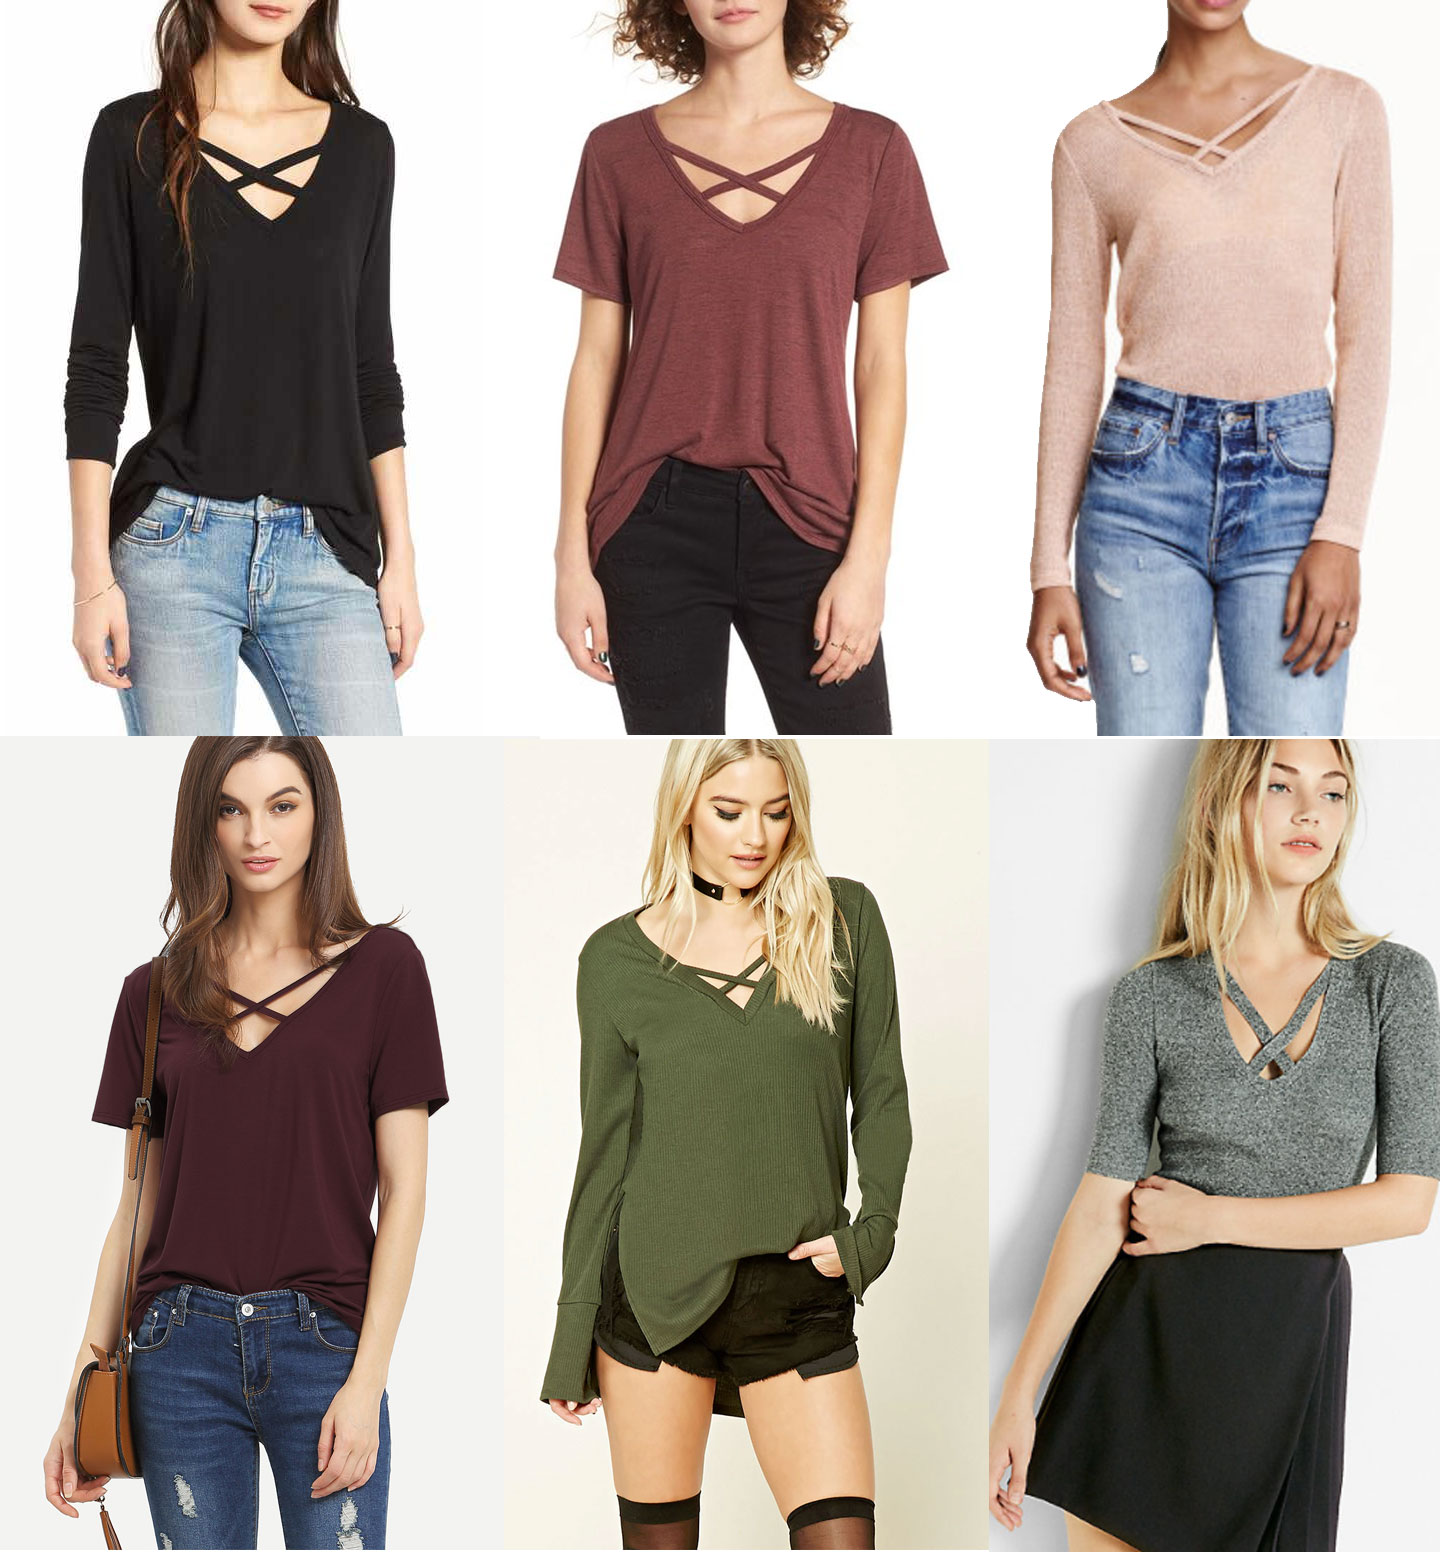 How To Style Criss Cross Top